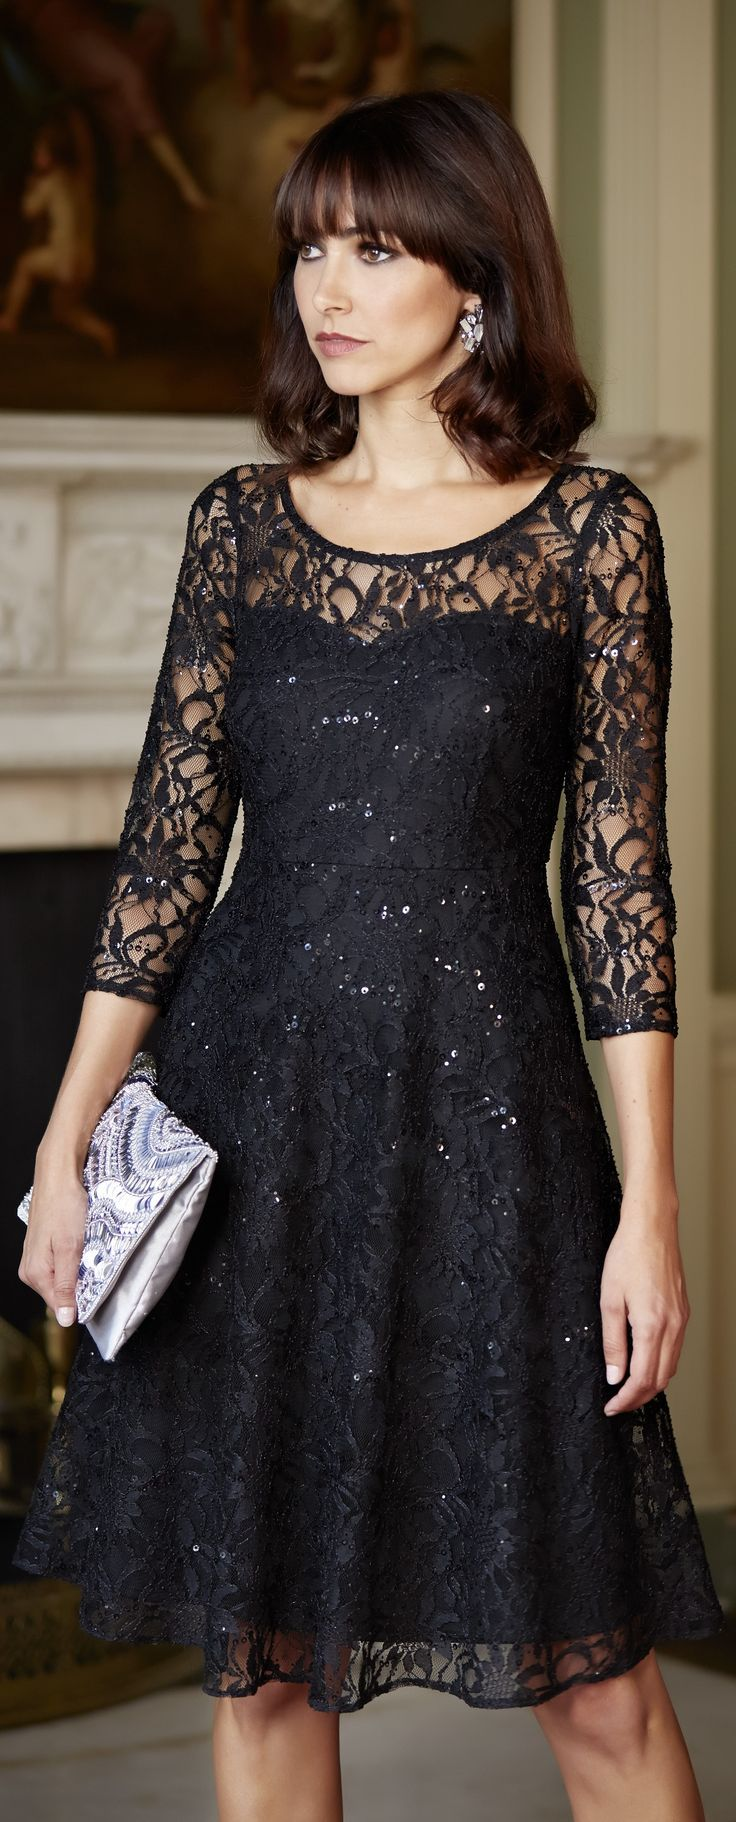 Little black dress perfect for a fall wedding. Easy to match. Lace short dress.  http://www.boomerinas.com/2013/04/14/what-to-wear-for-cruise-dinners-formal-nights/